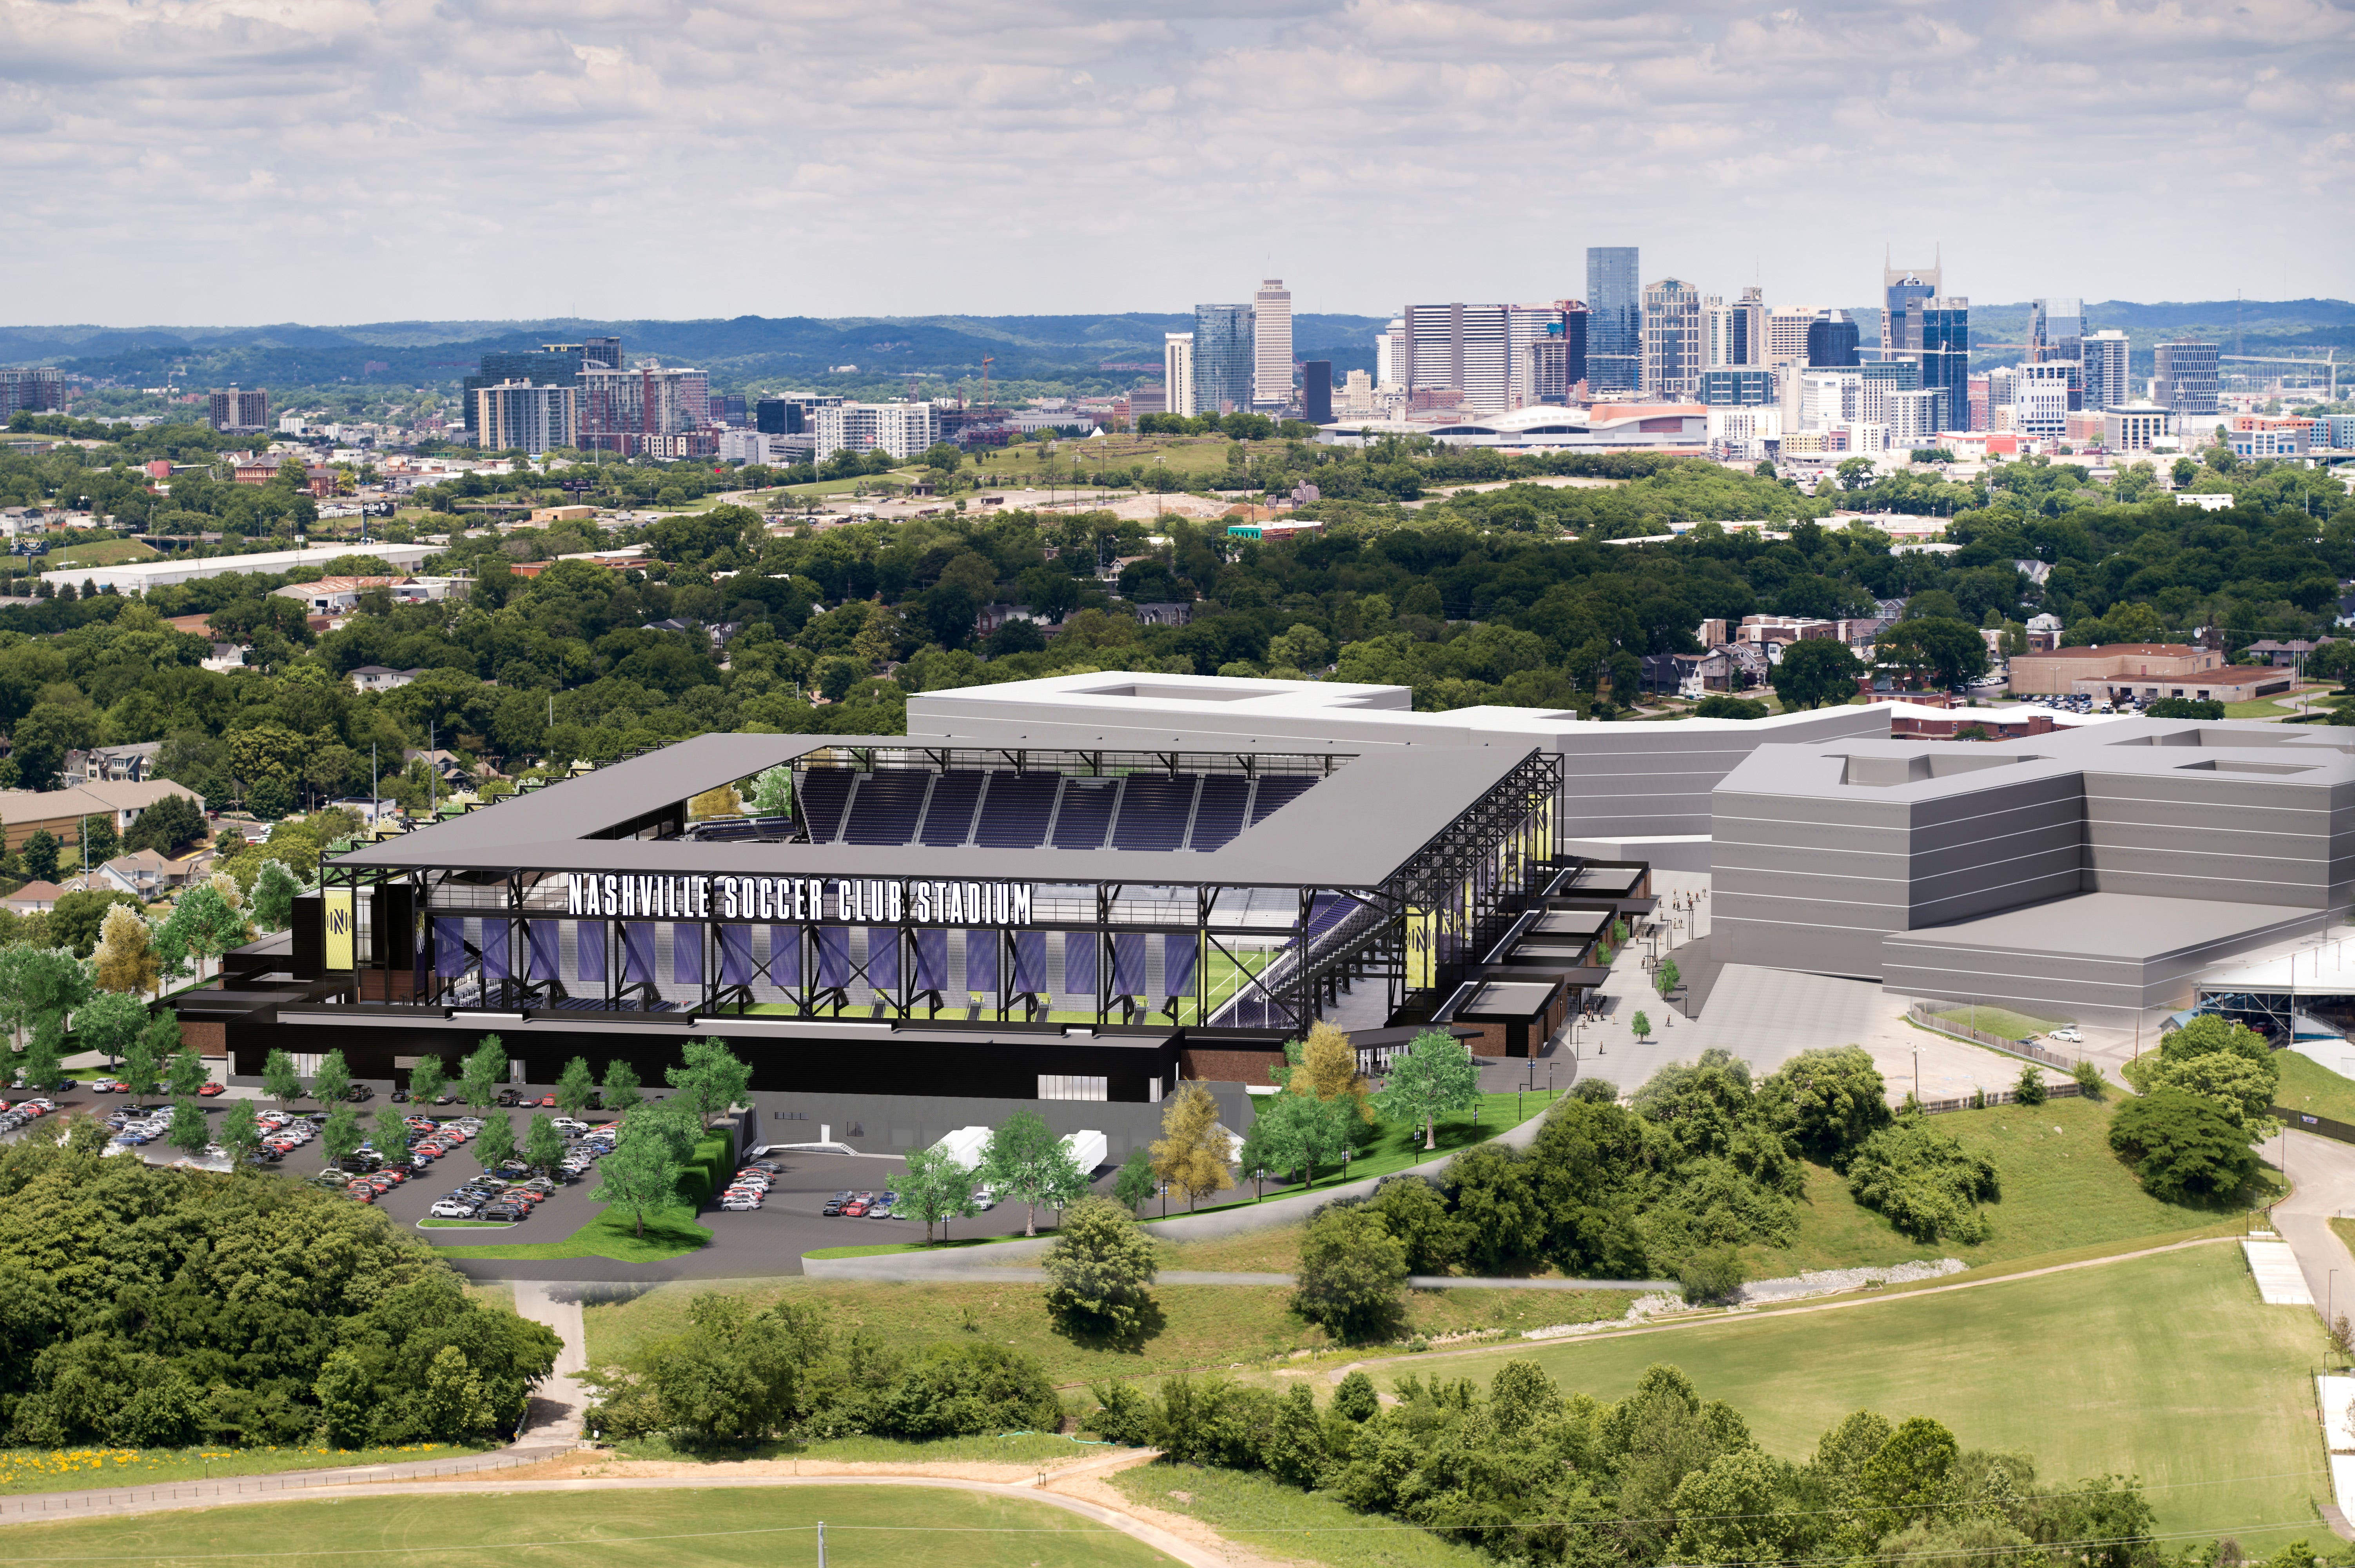 With Nashville's MLS stadium progress stalled, Mayor Cooper and team owner meet to discuss hurdles